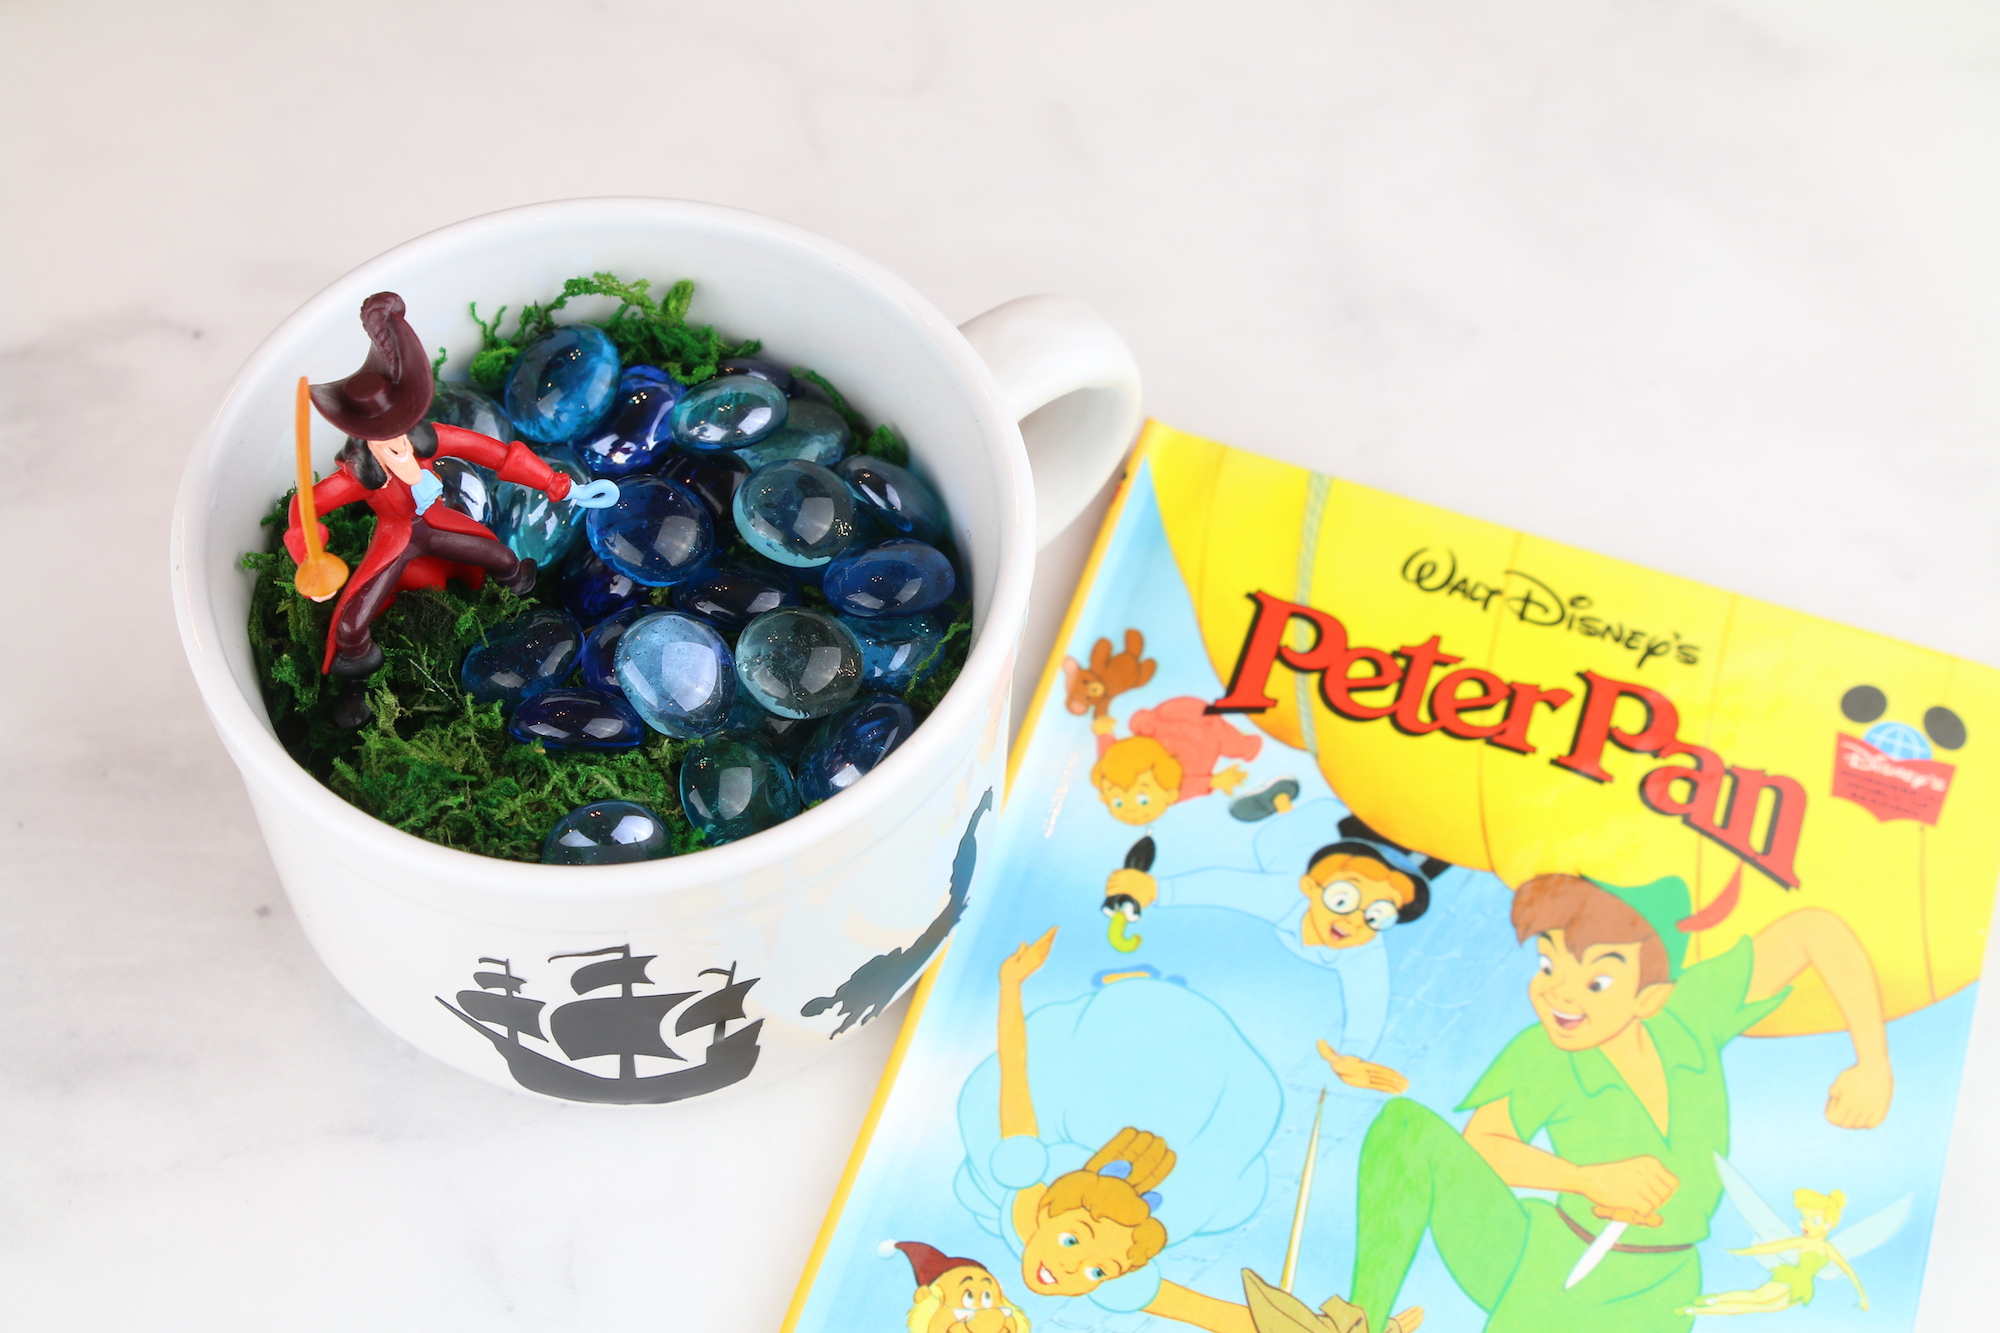 Peter Pan Kid Garden Craft